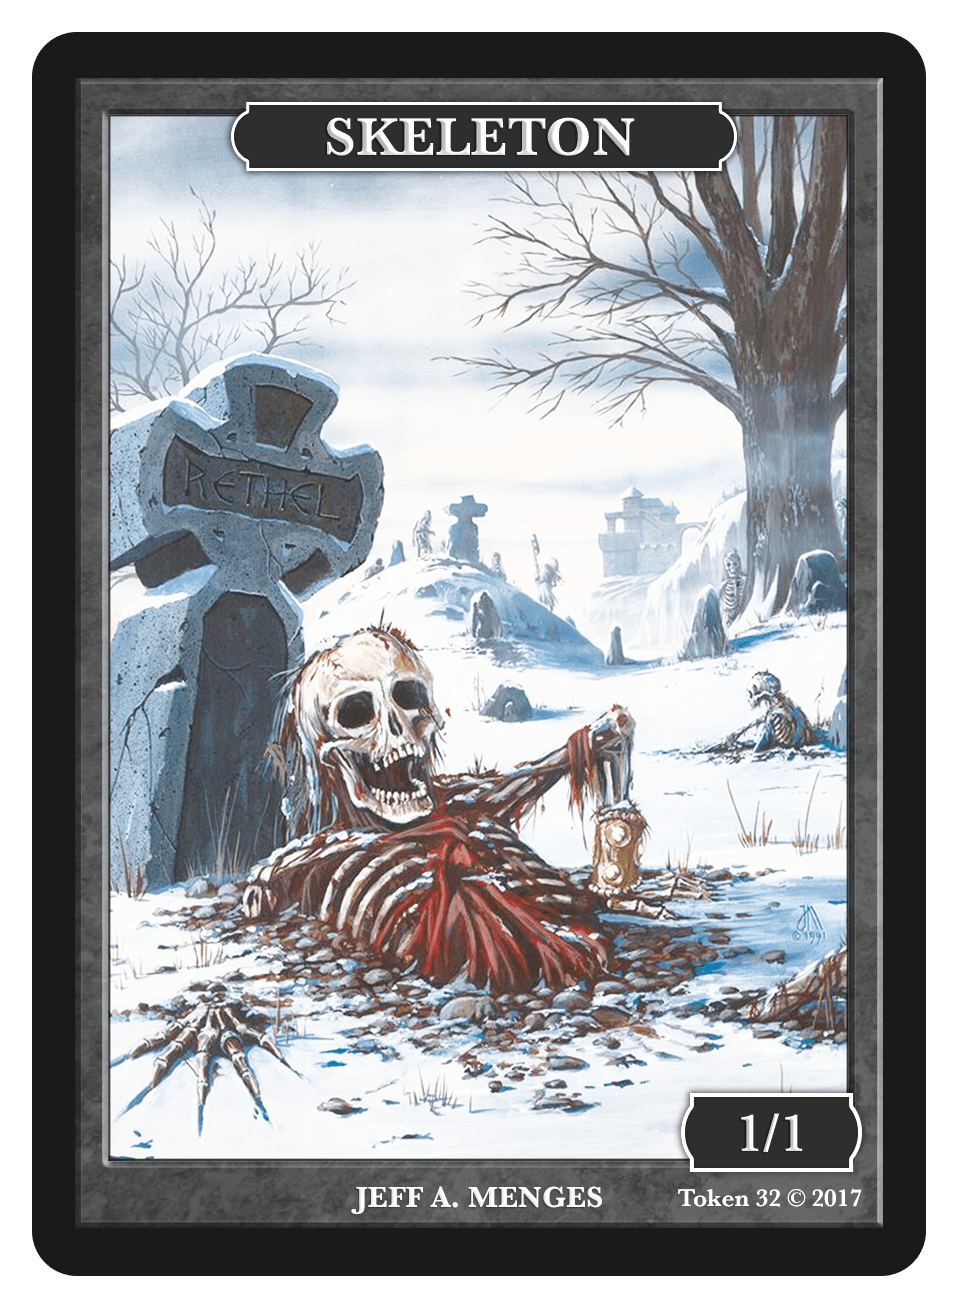 Skeleton Token (1/1) by Jeff A. Menges